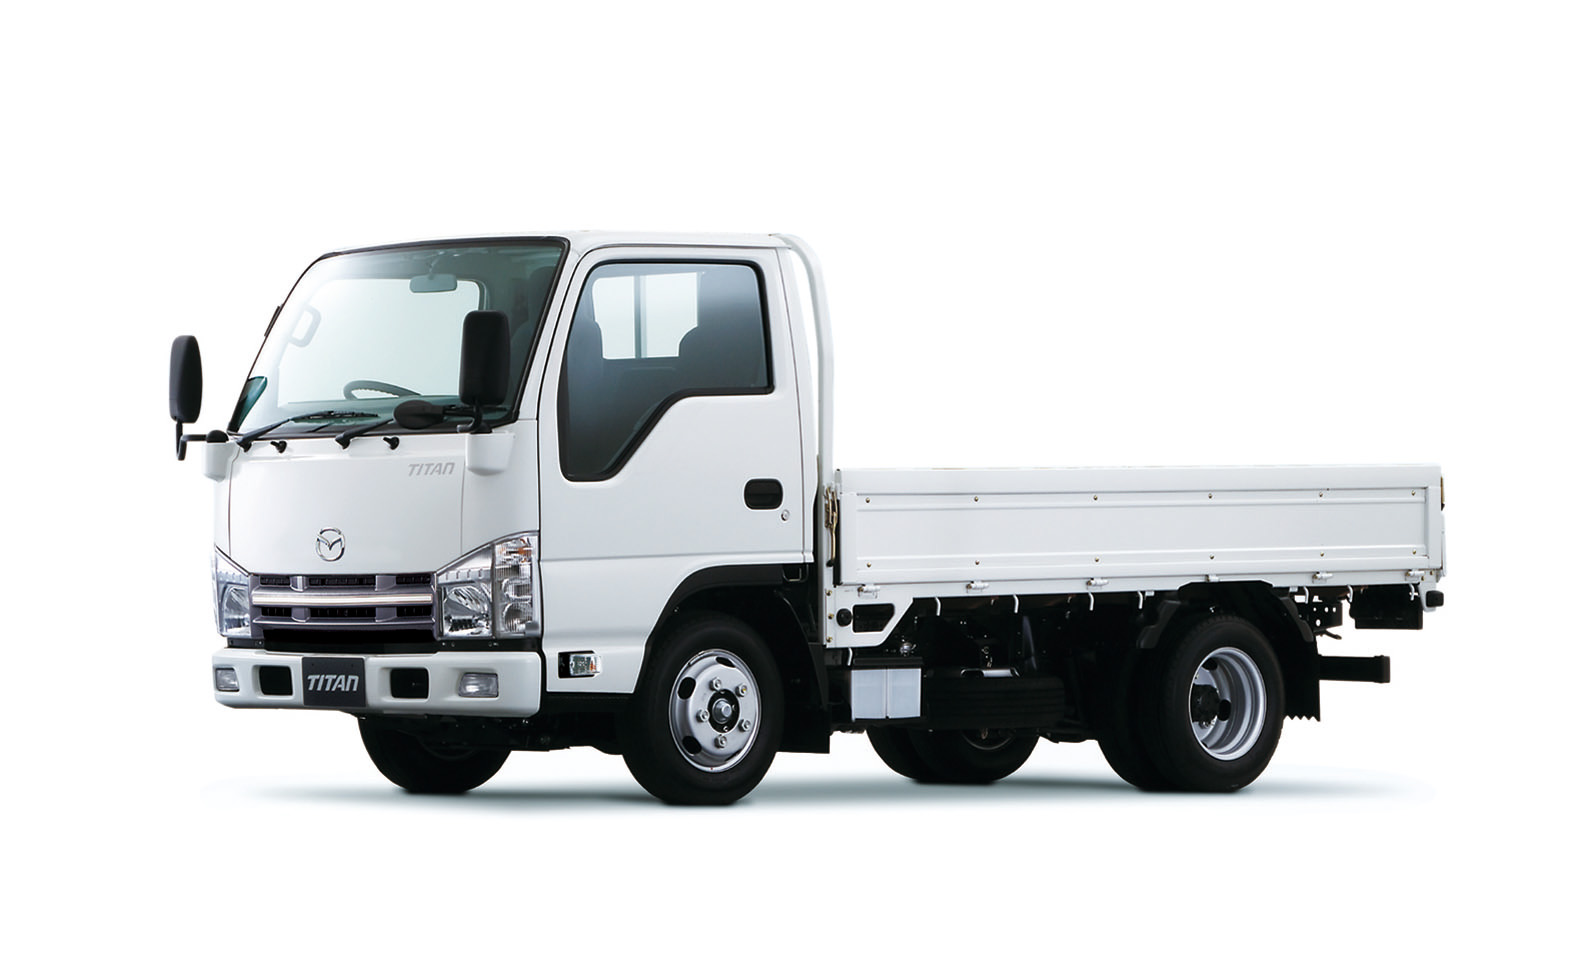 mazda titan truck facelifted autoevolution. Black Bedroom Furniture Sets. Home Design Ideas